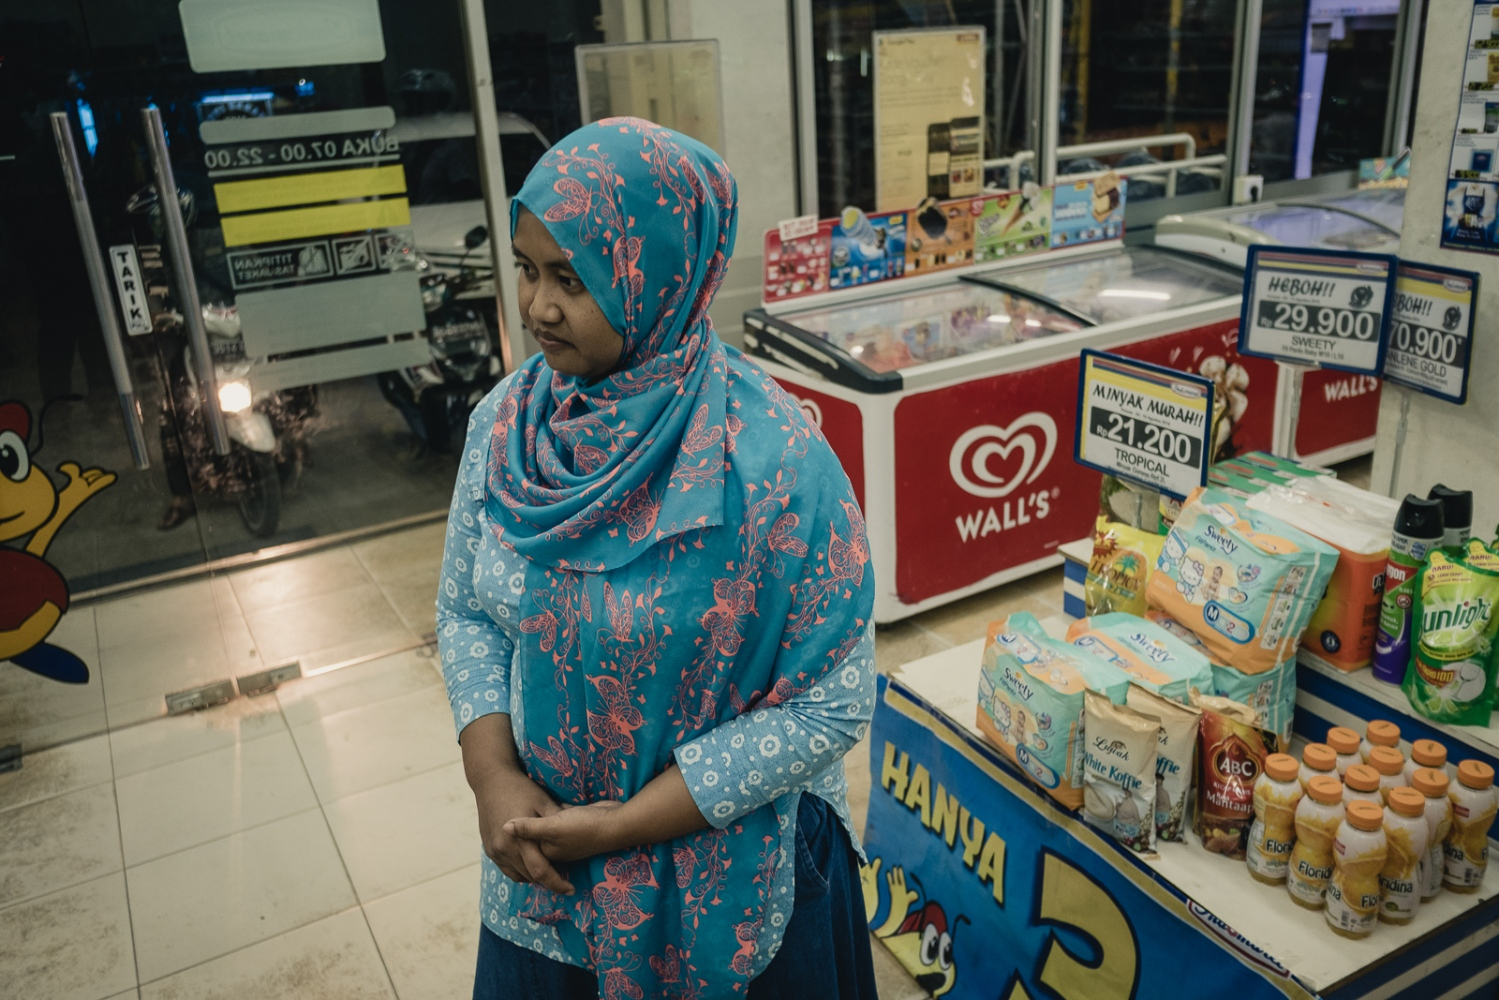 Indonesia, 2016. Indonesian Nina Duwi Koriah, 29, in a convenience store in Ngawi, East Java. Nina lives here with her husband, her two children, her father and her two brothers. Now back in Indonesia after her accident in Singapore, where she was employed as a domestic worker, she is staying with her family until she is well enough to work. She intends to stay near home, and look for work in the town of Ngawi, possibly as a sales assistant.